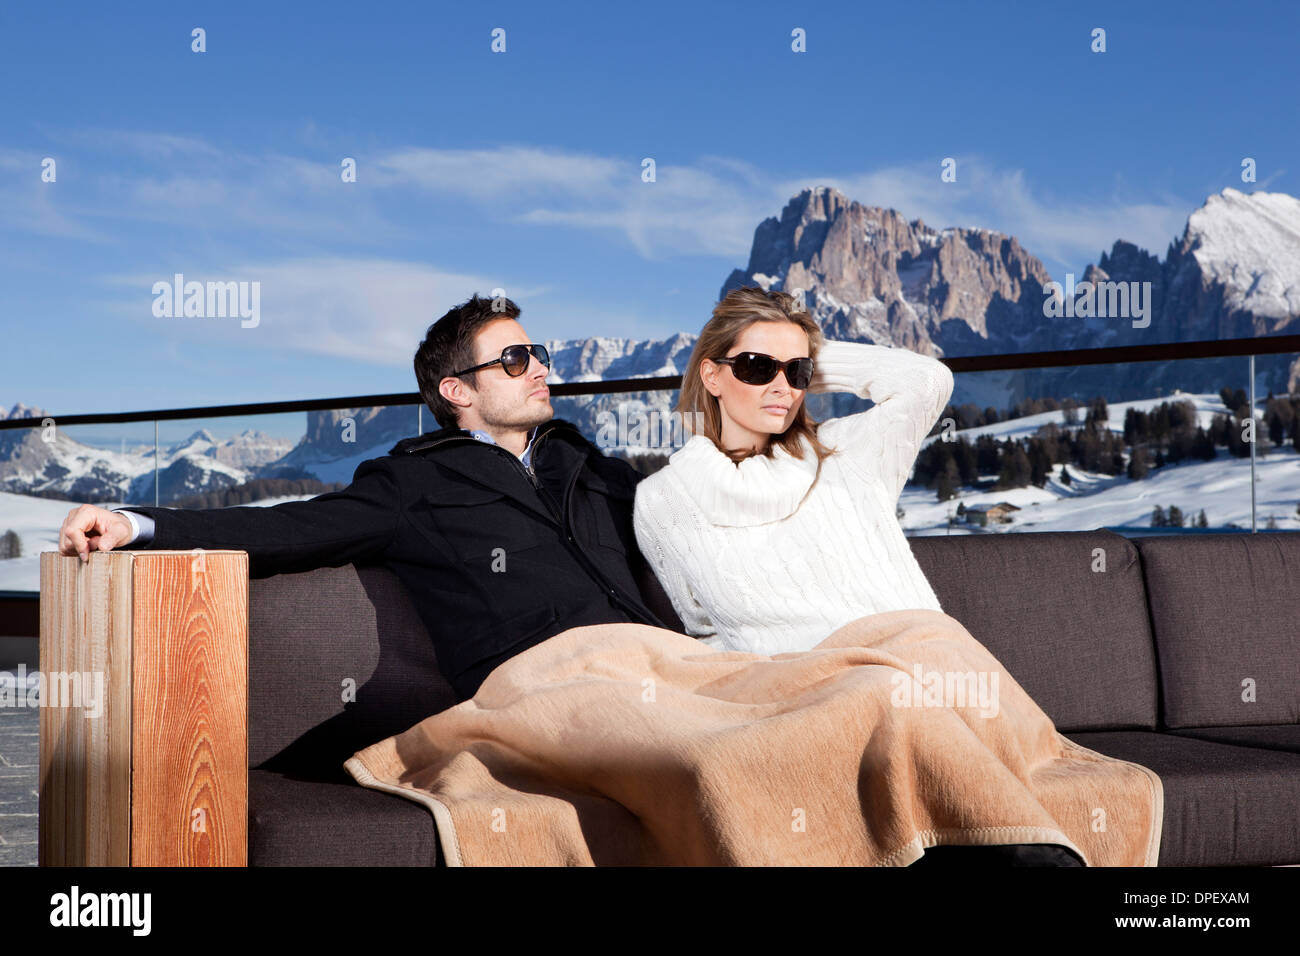 Man and woman sitting on a couch outdoors, Seiser Alm, South Tyrol, Italy - Stock Image